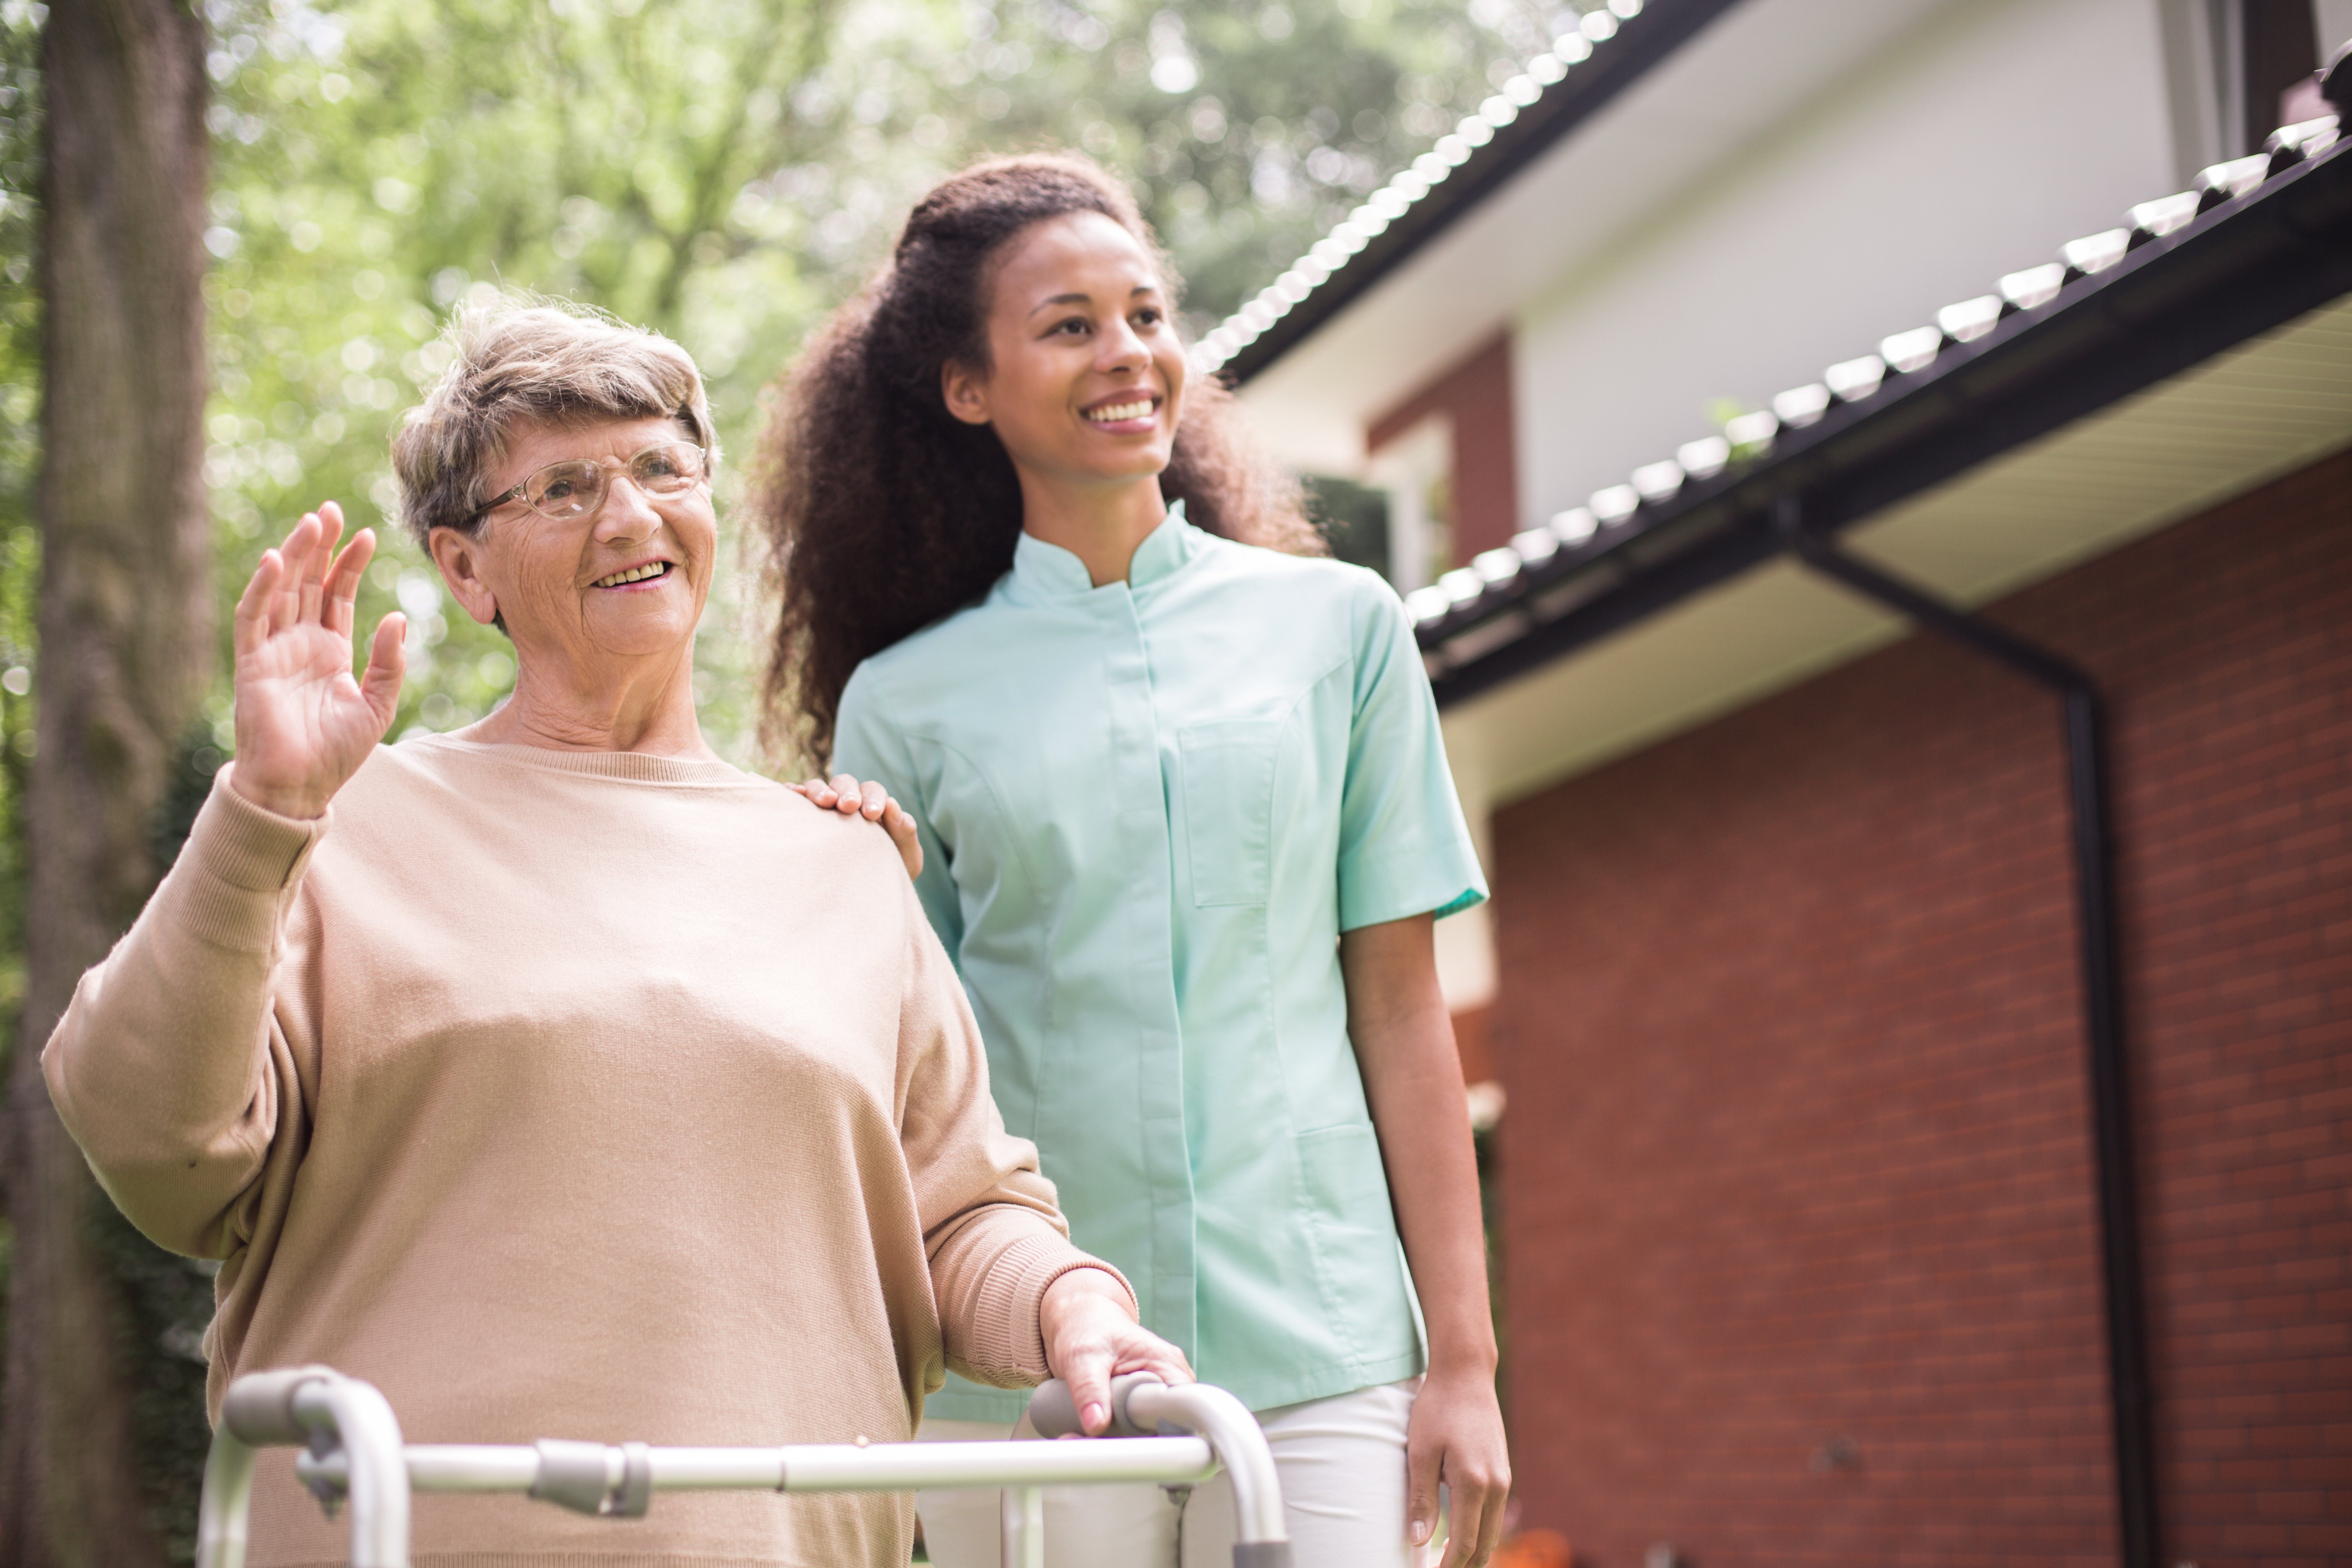 Senior Home Care Vs. Facility Care